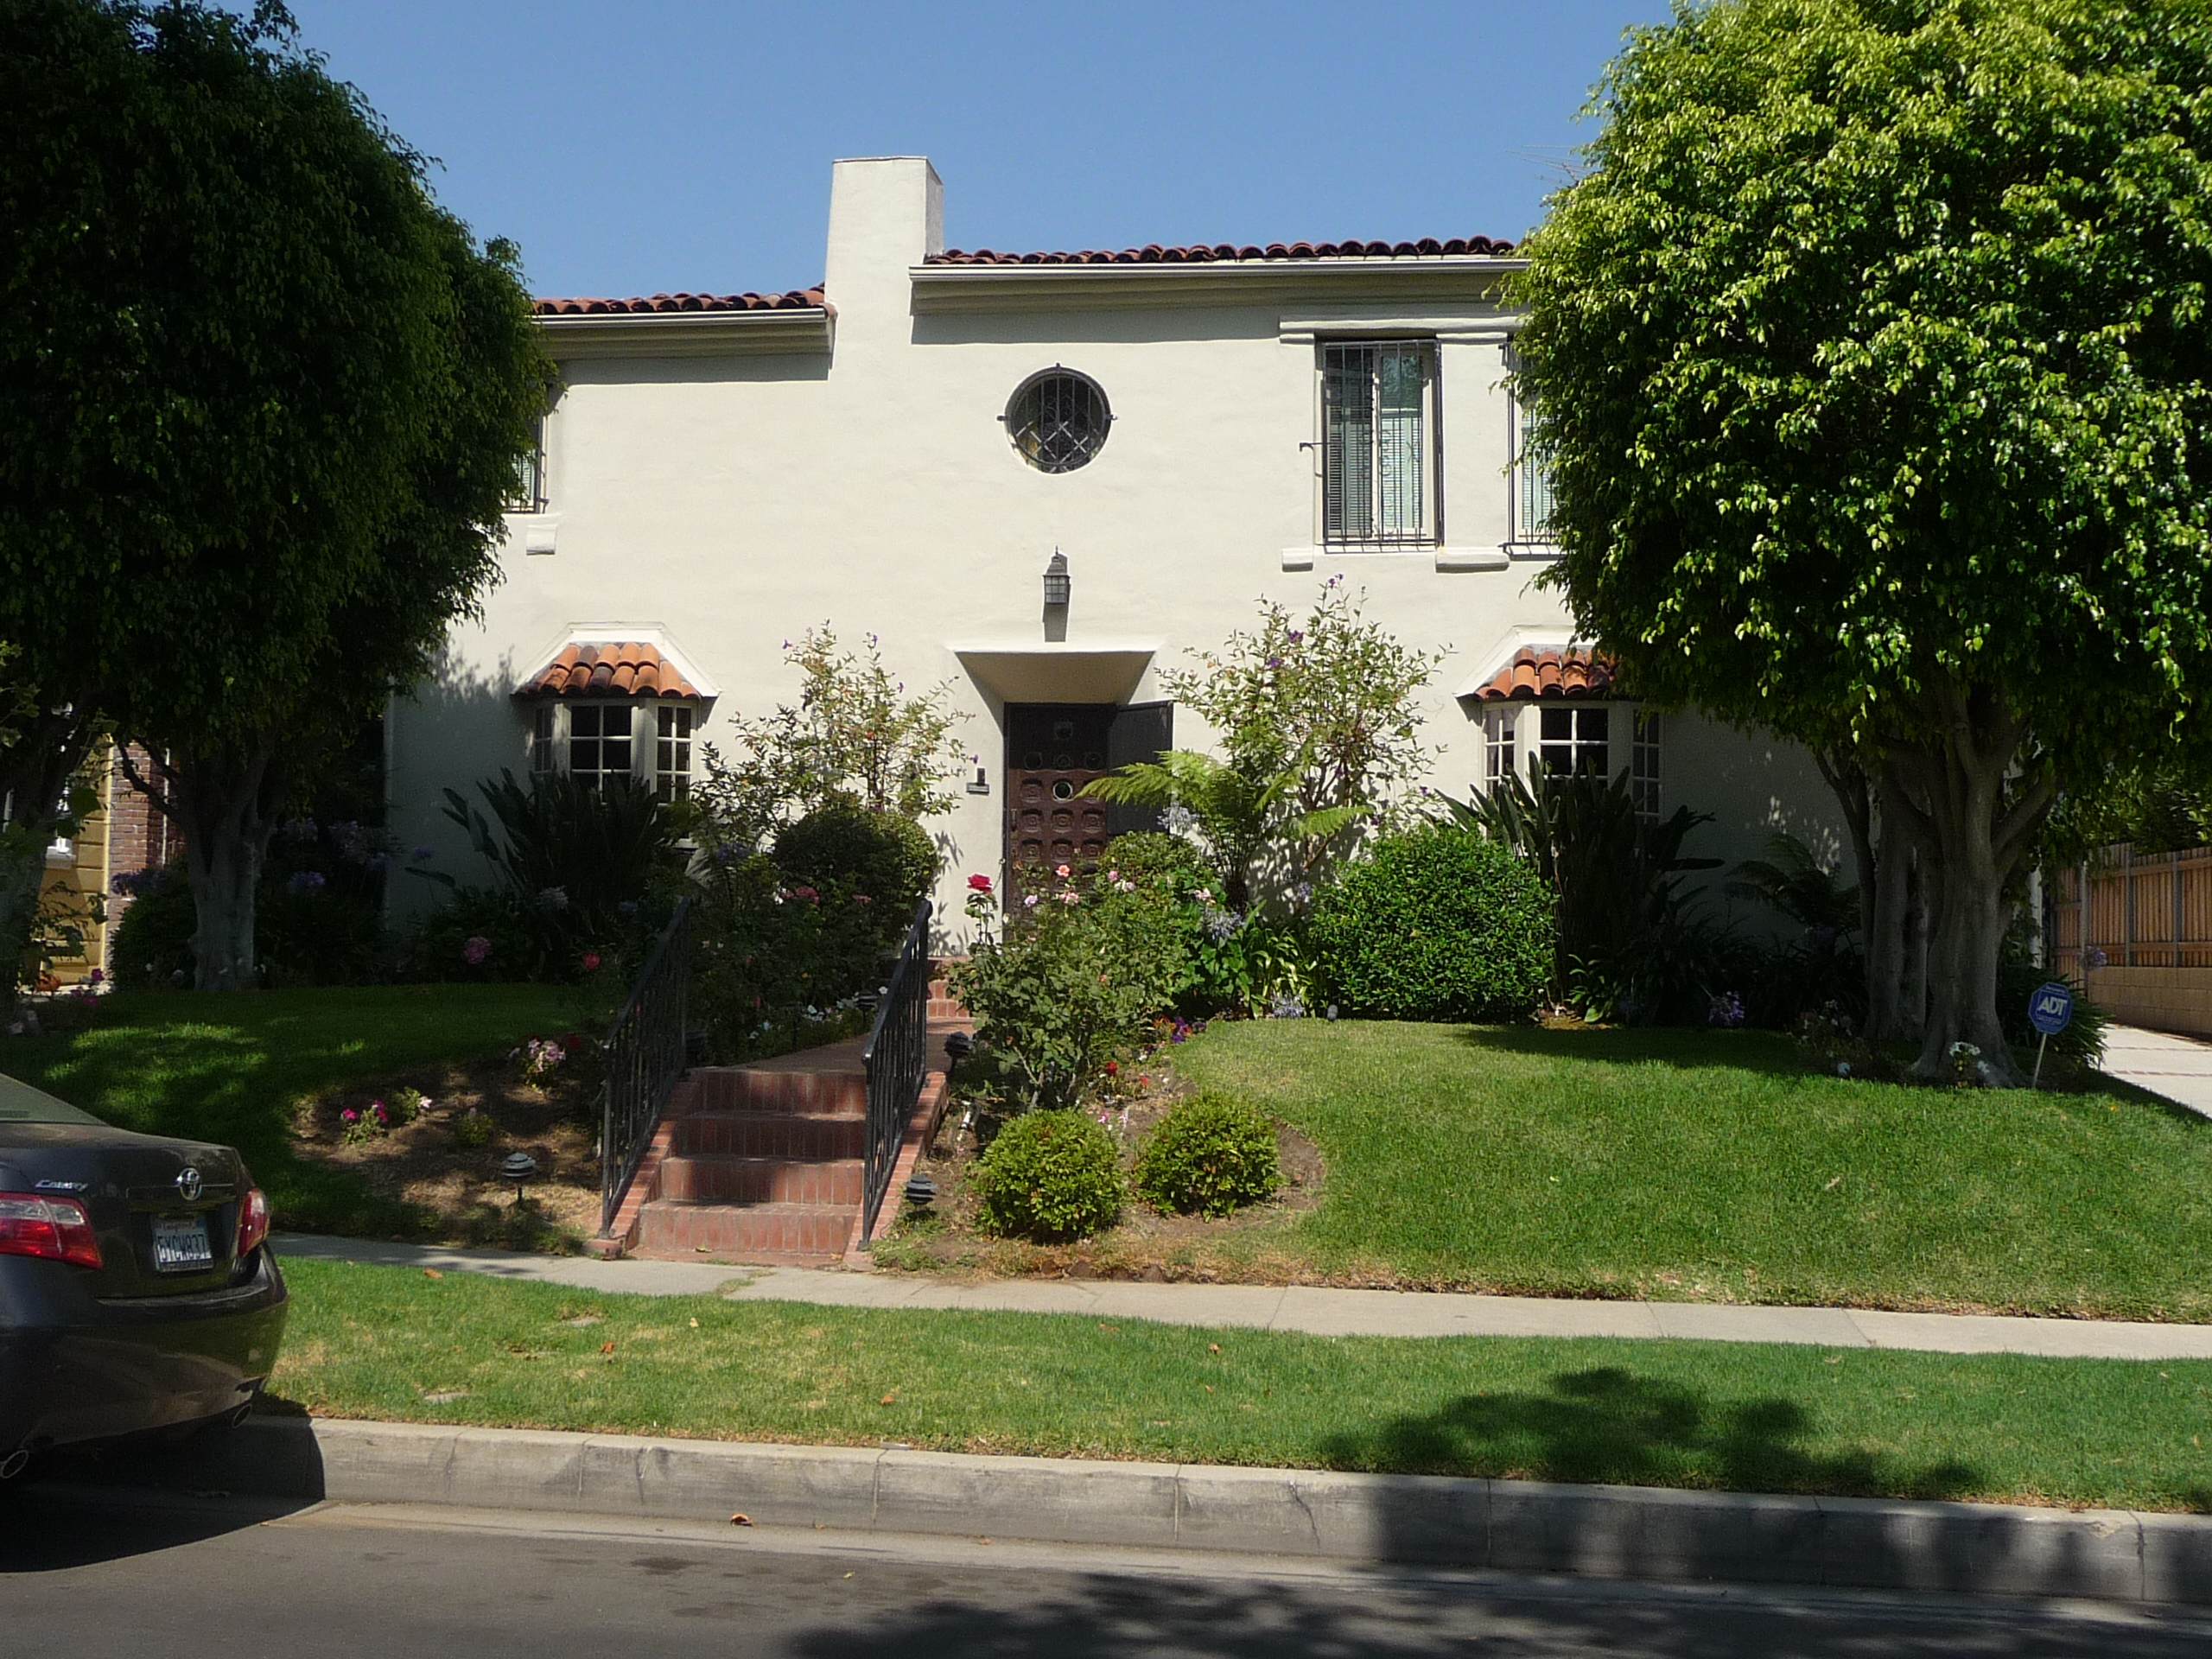 440 N MANSFIELD AVE - PHOTO